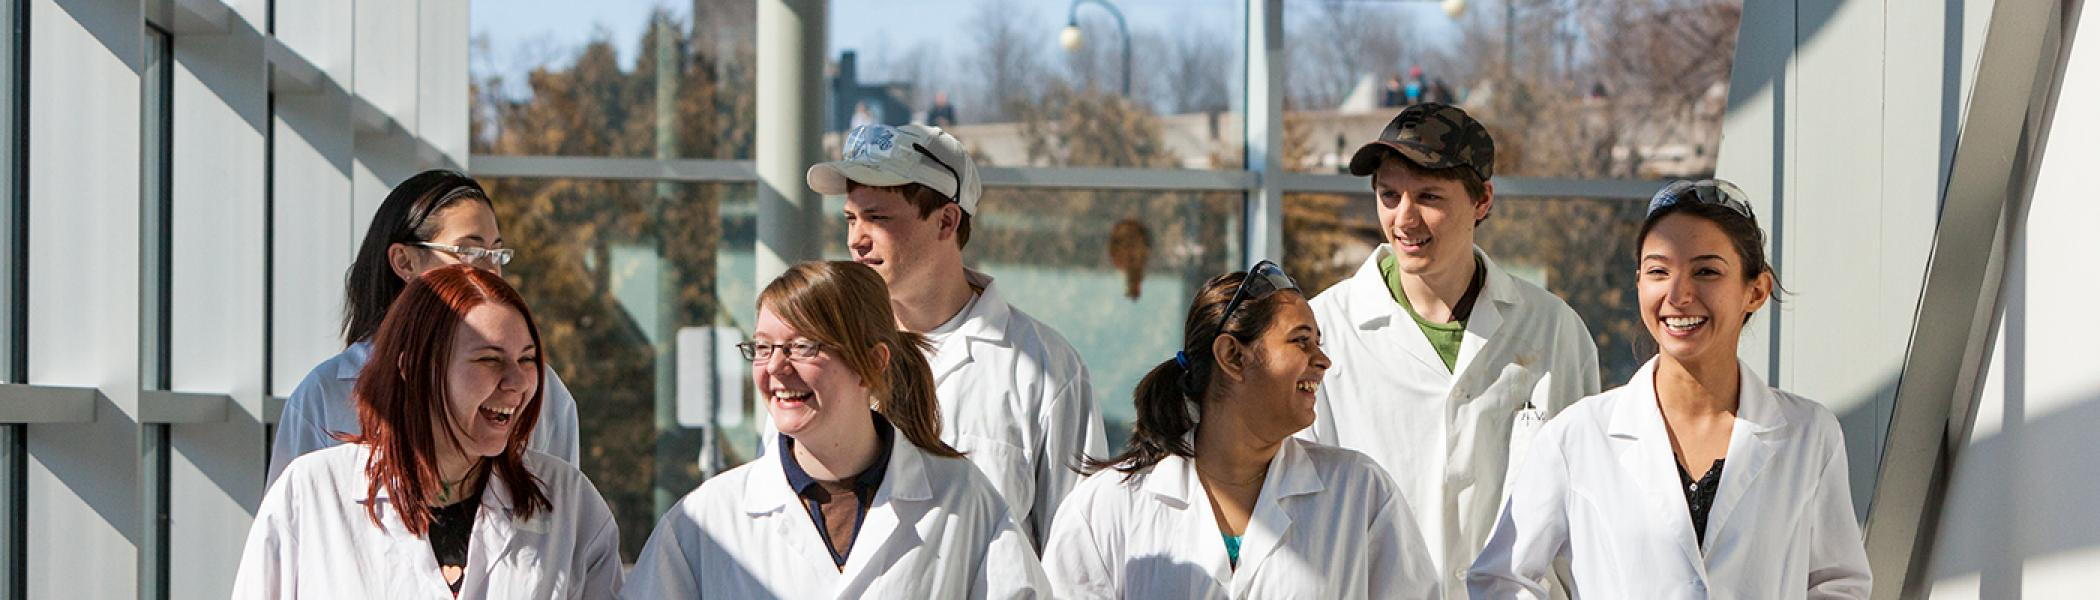 A group of 7 chemistry students walking in a hall smiling and talking, wearing white lab coats